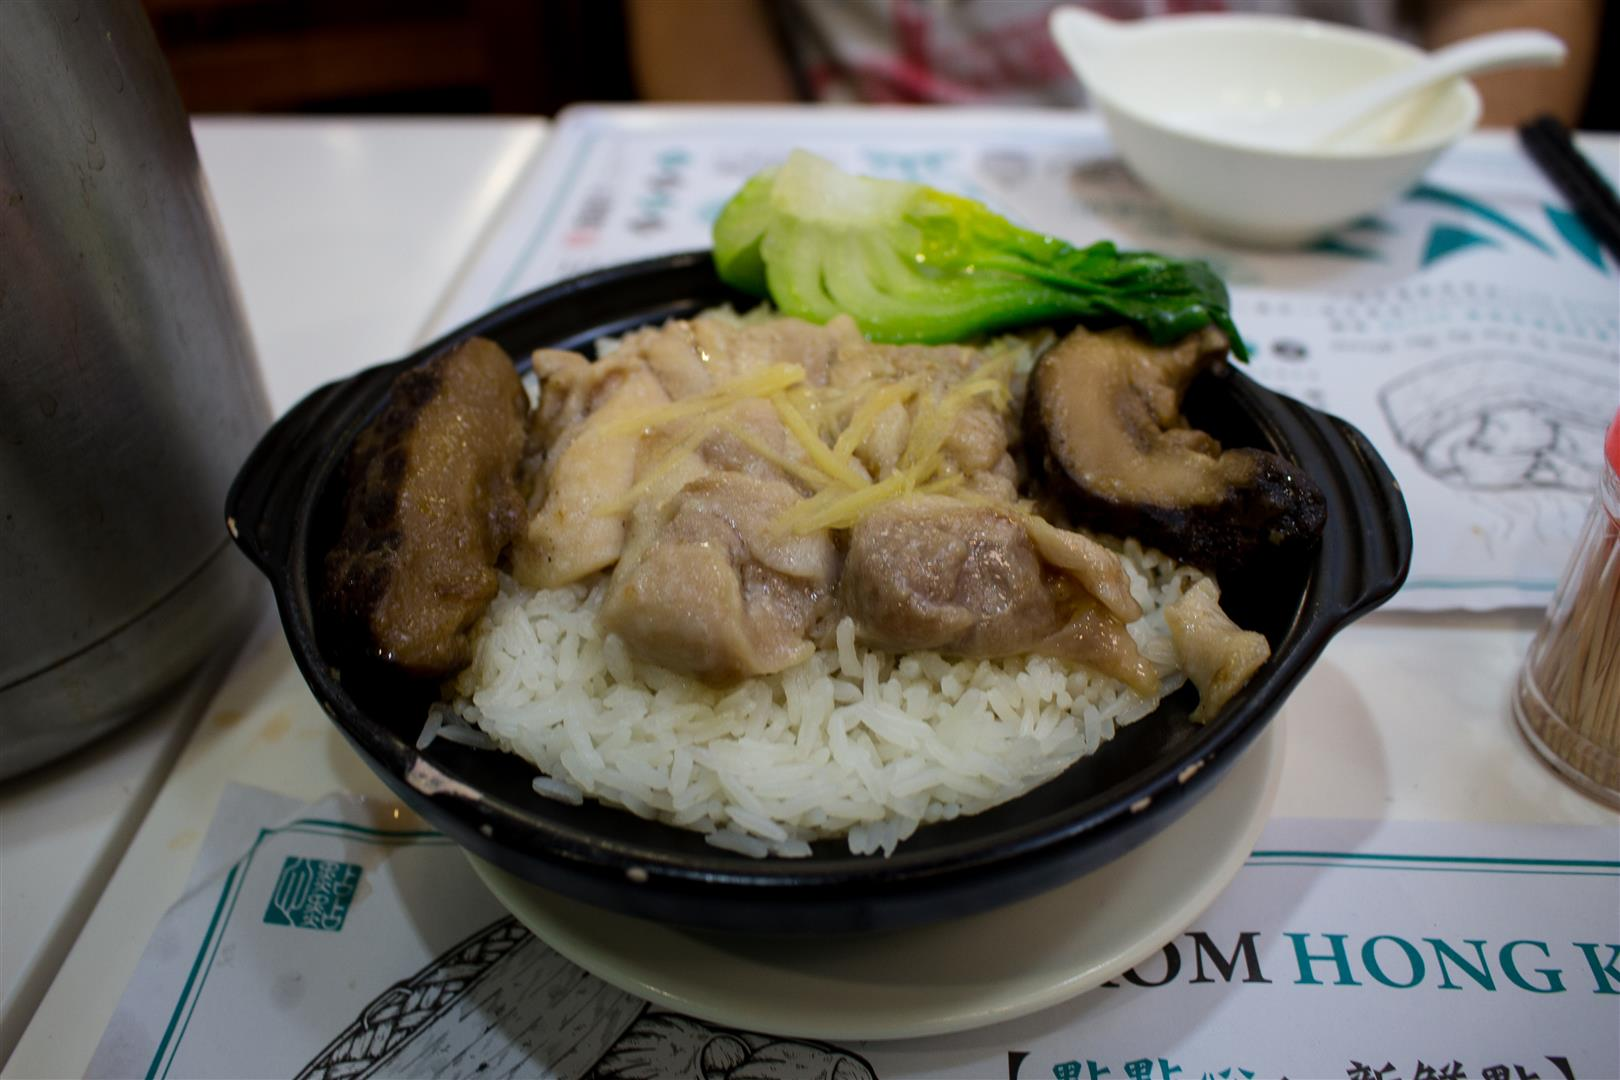 Mushroom and Chicken on Steamed Rice